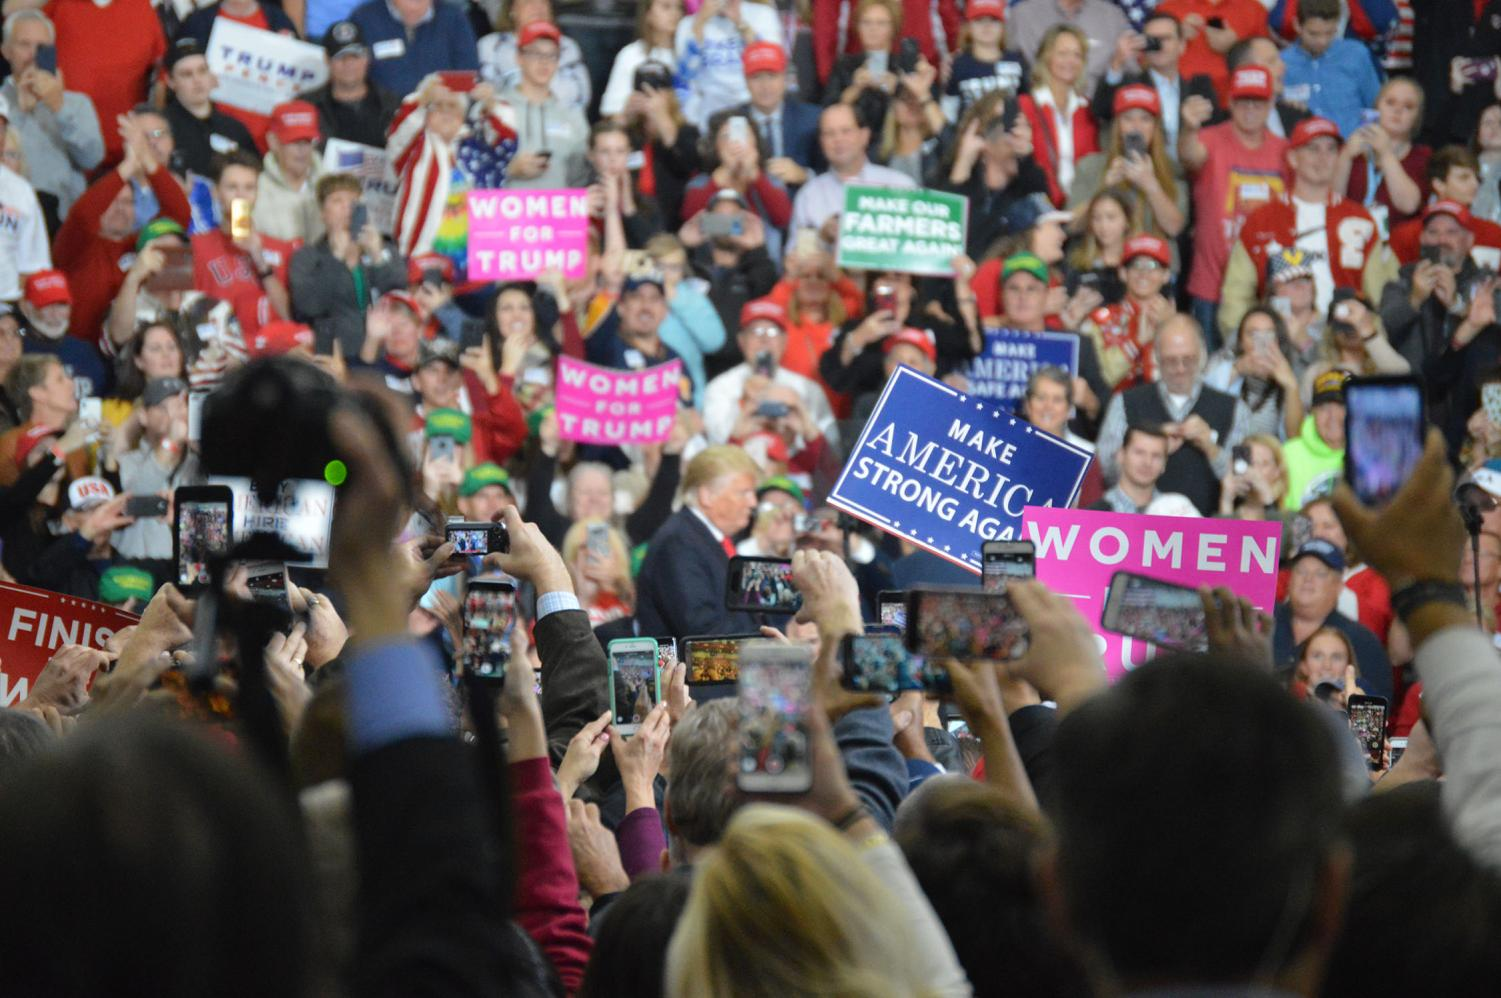 Rally attendees snap pictures, shoot videos and cheer as President Trump takes the stage.